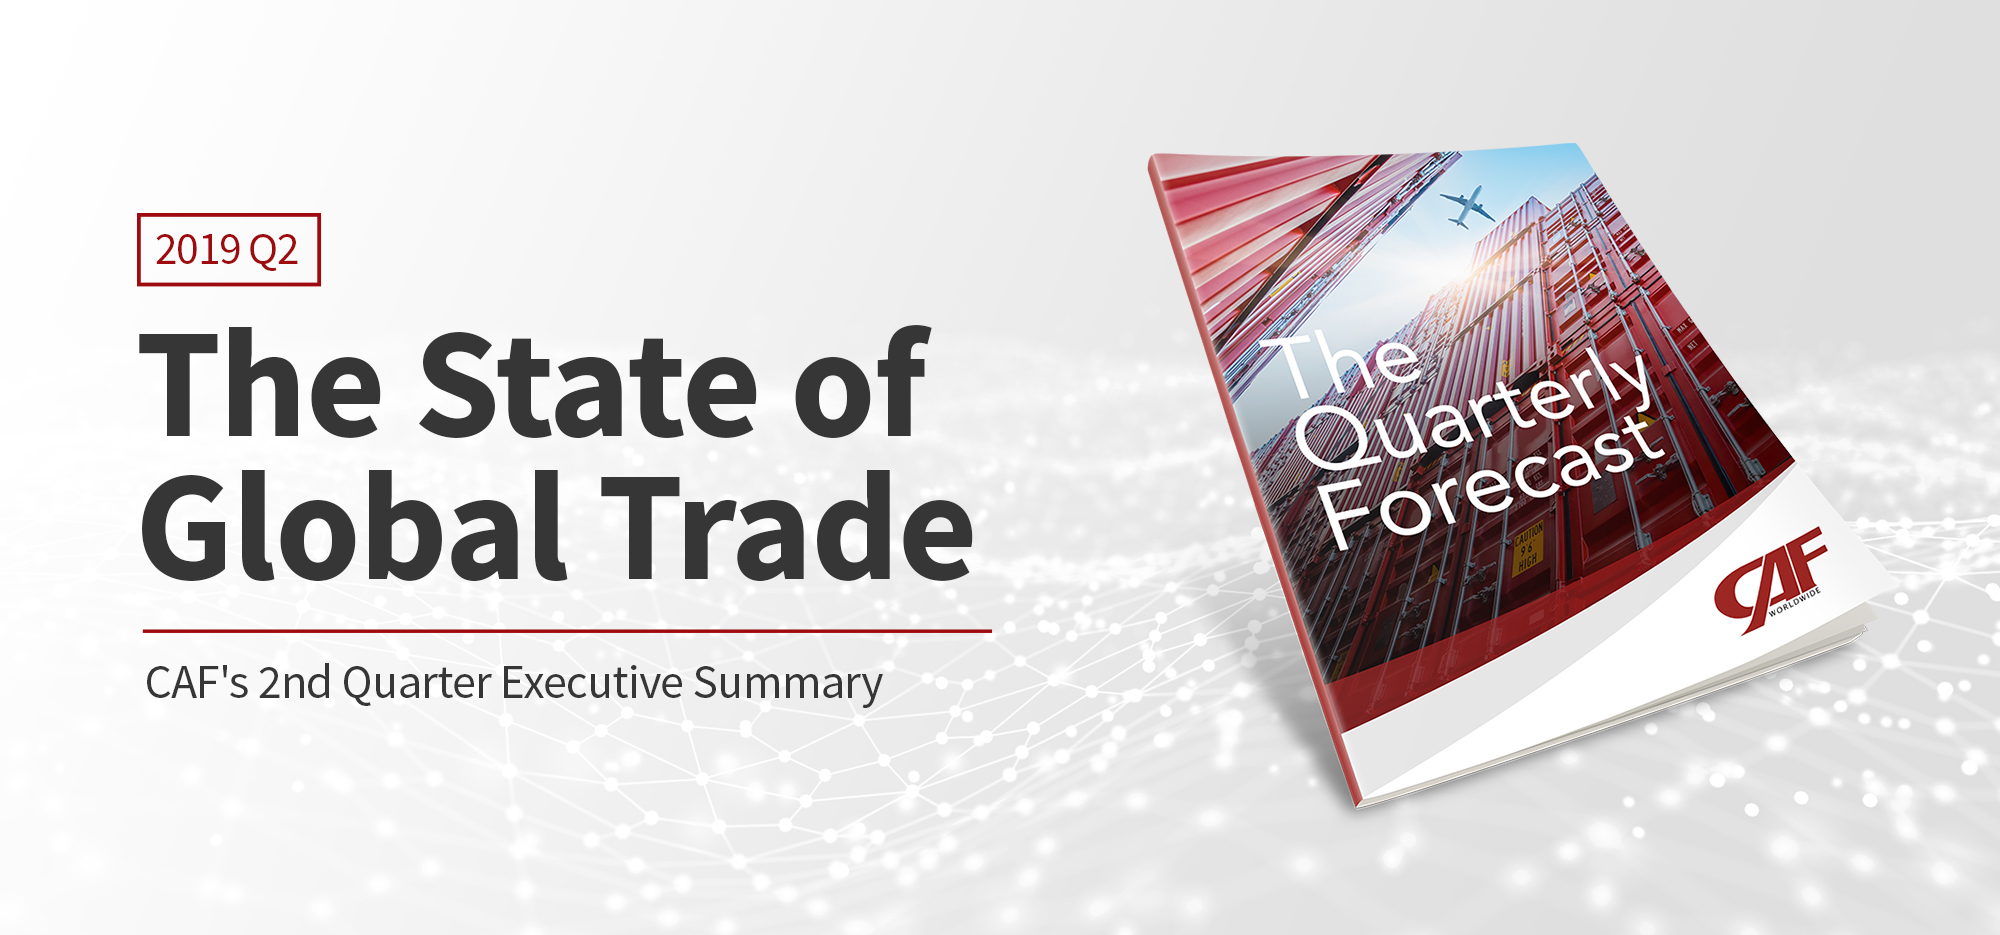 The State of Global Trade: CAF's 2nd Quarter Executive Summary